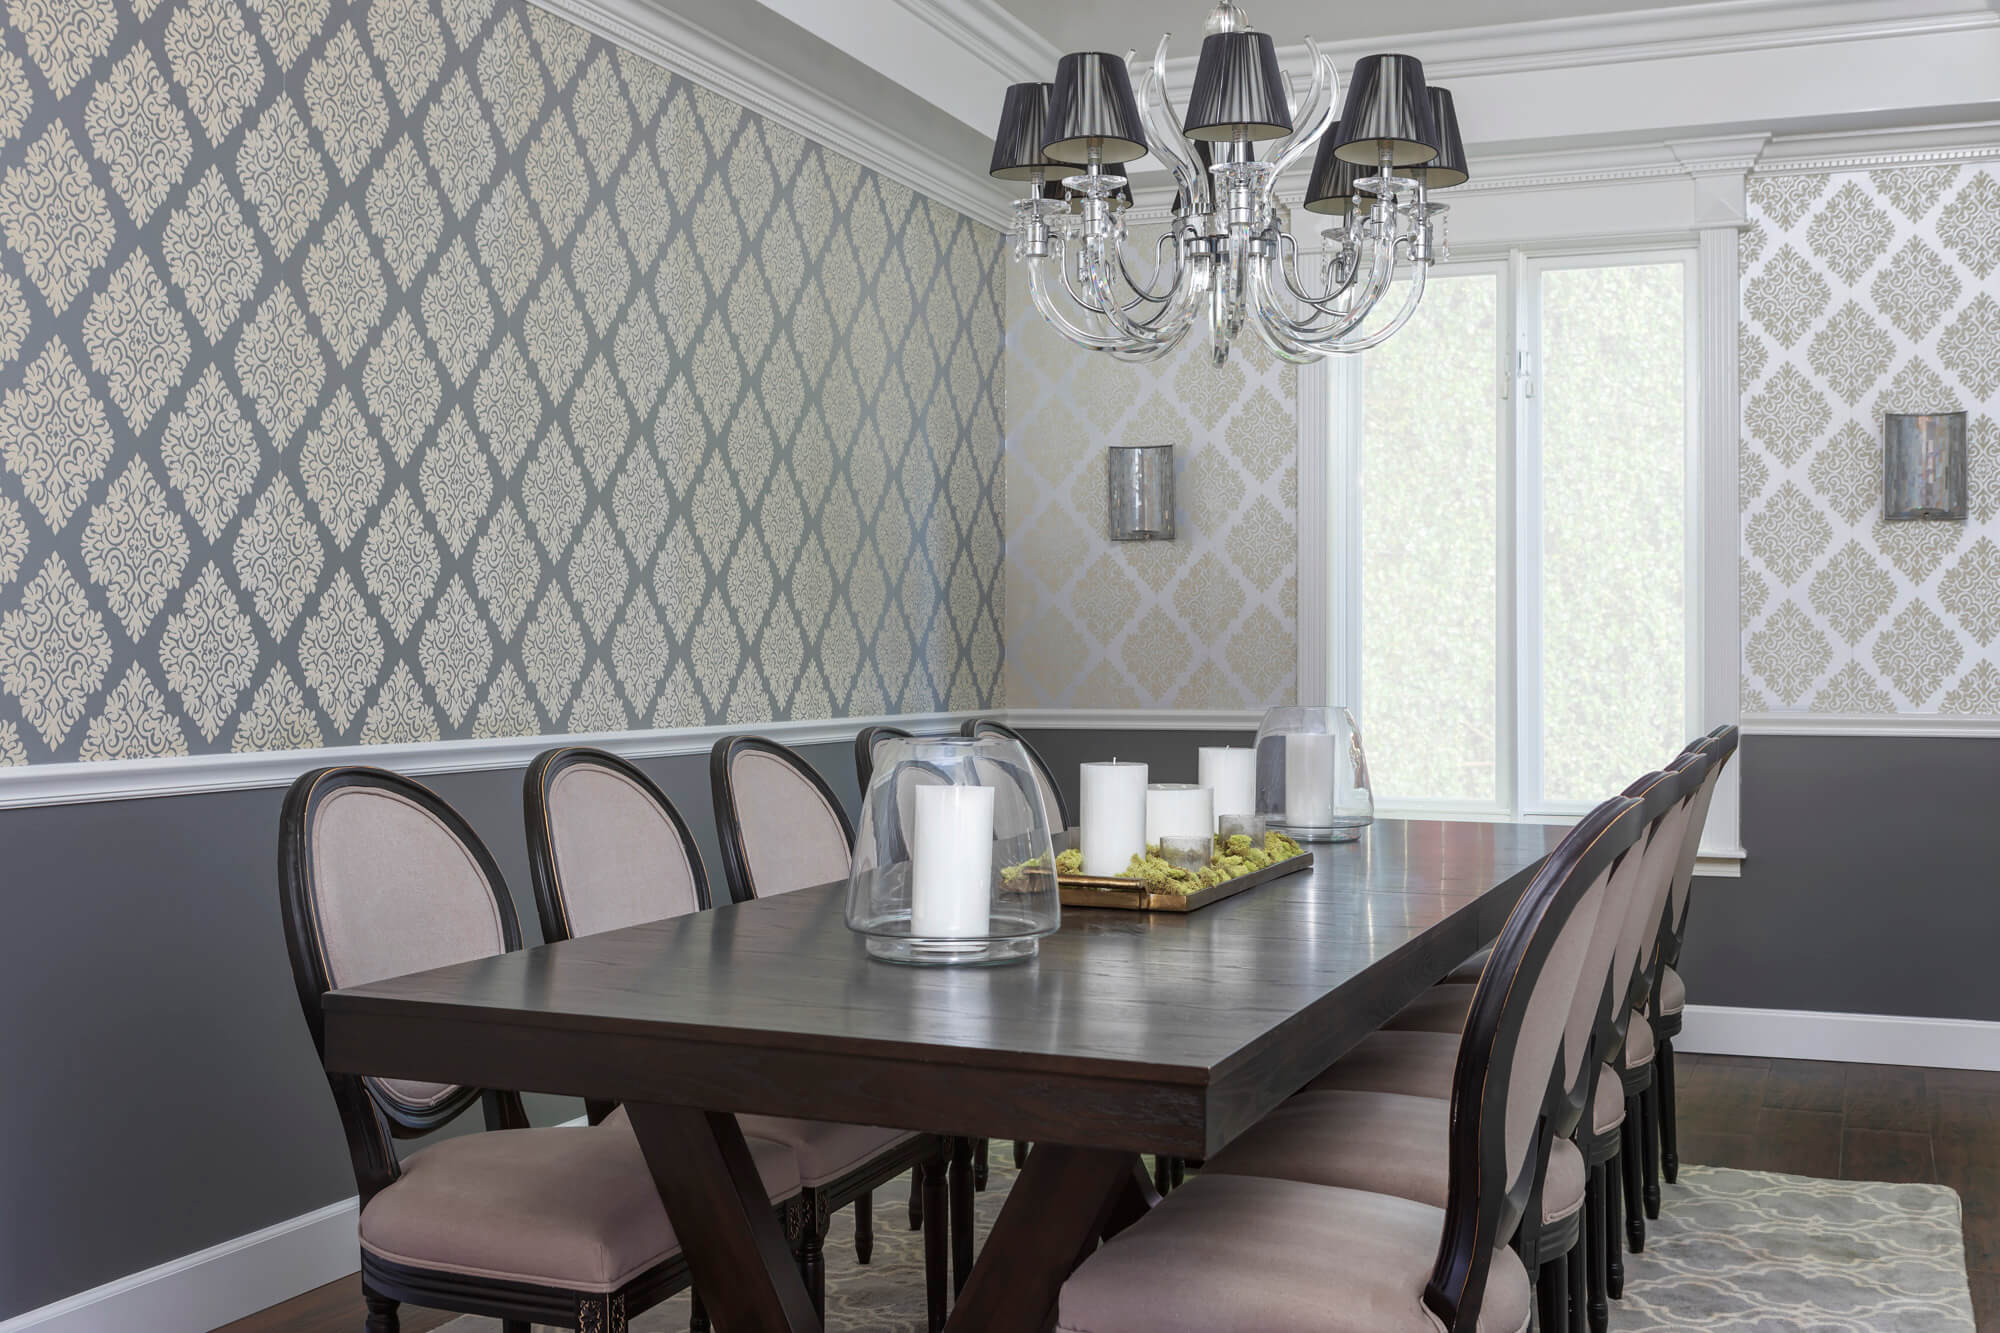 Using wallpaper in 2020 is on design trend for home remodels